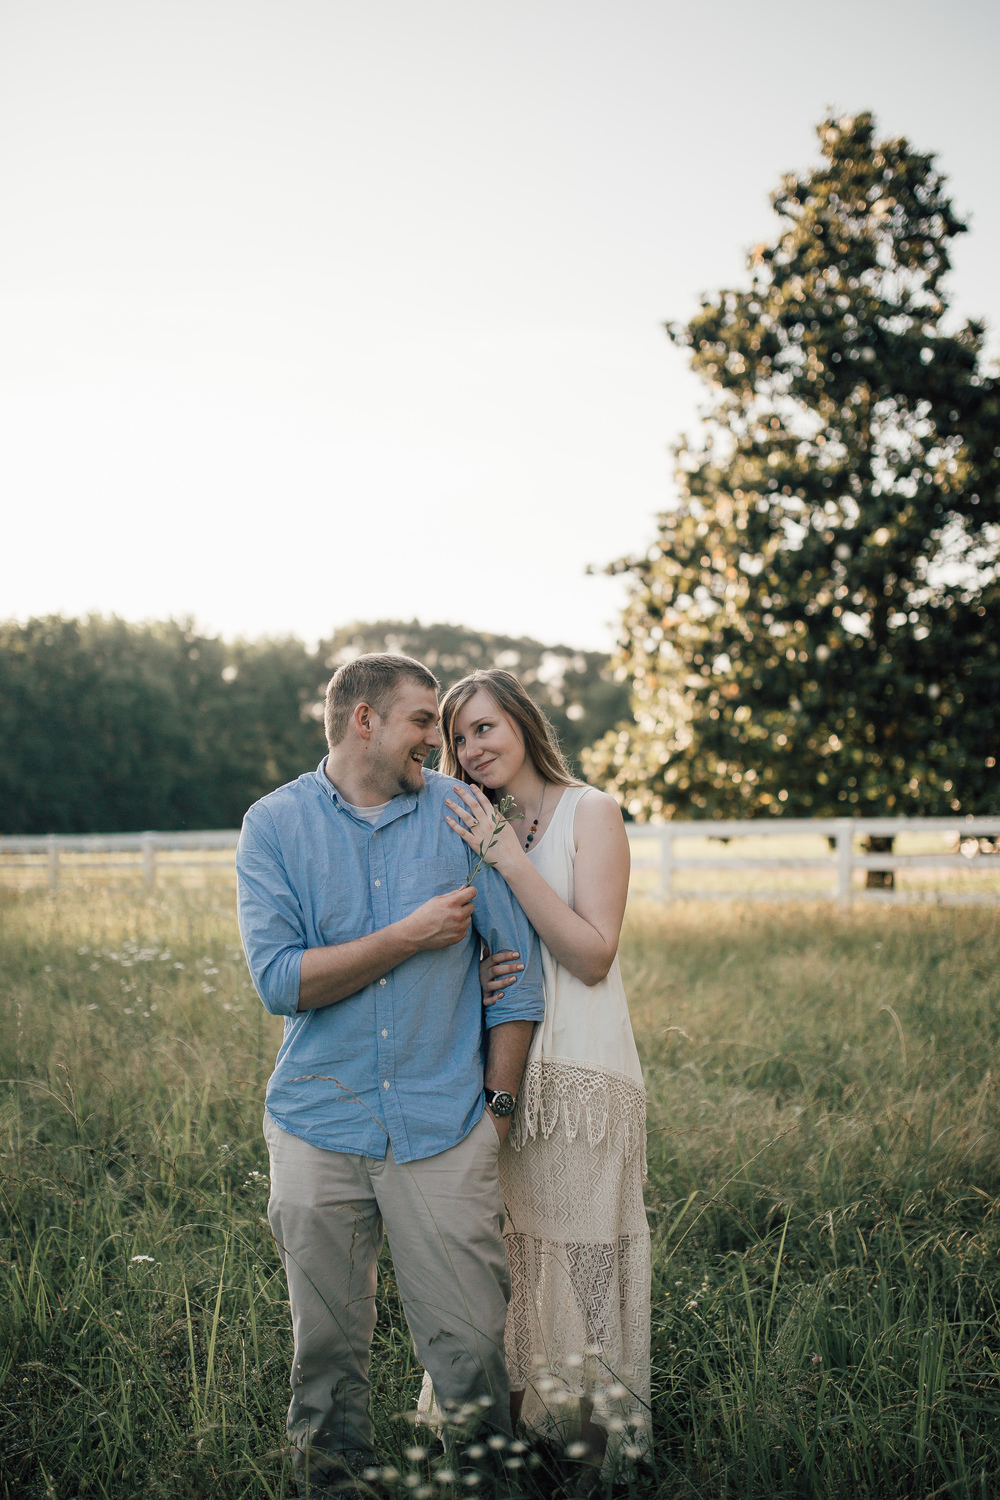 cassie-cook-photography-memphis-engagement-wedding-photographer